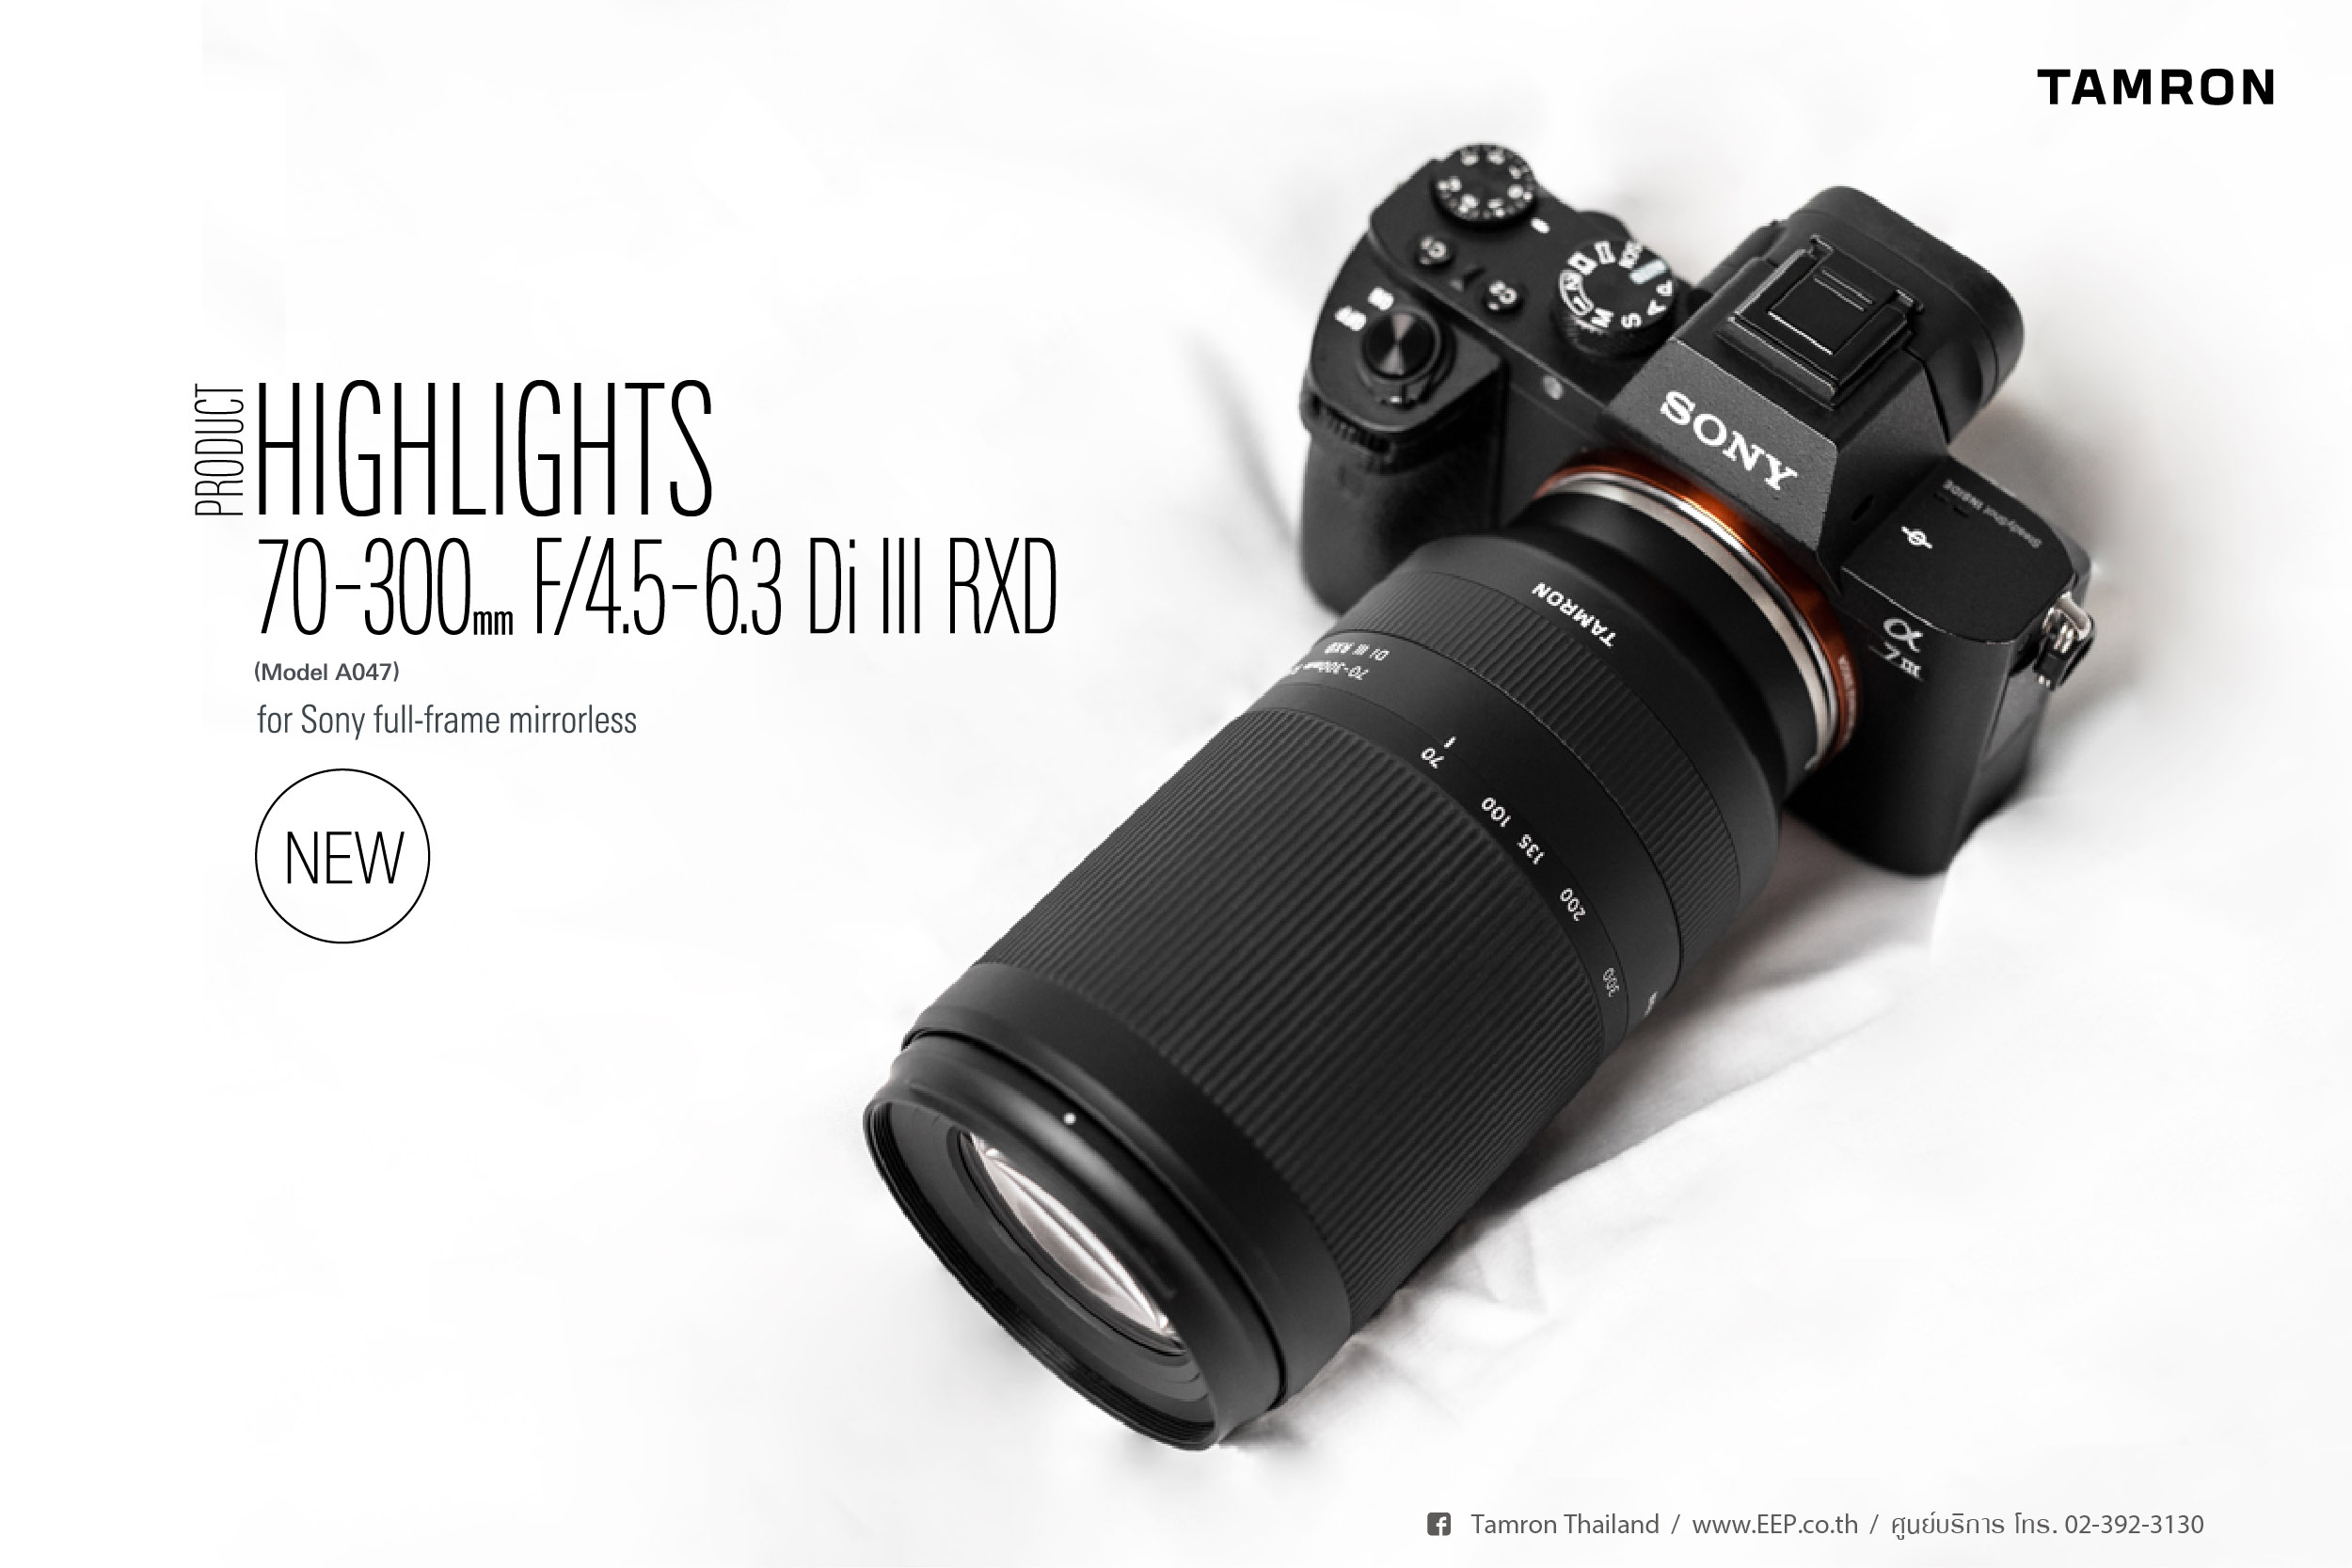 Product Highlight : TAMRON 70-300mm F/4.5-6.3 Di III RXD (Model A047)